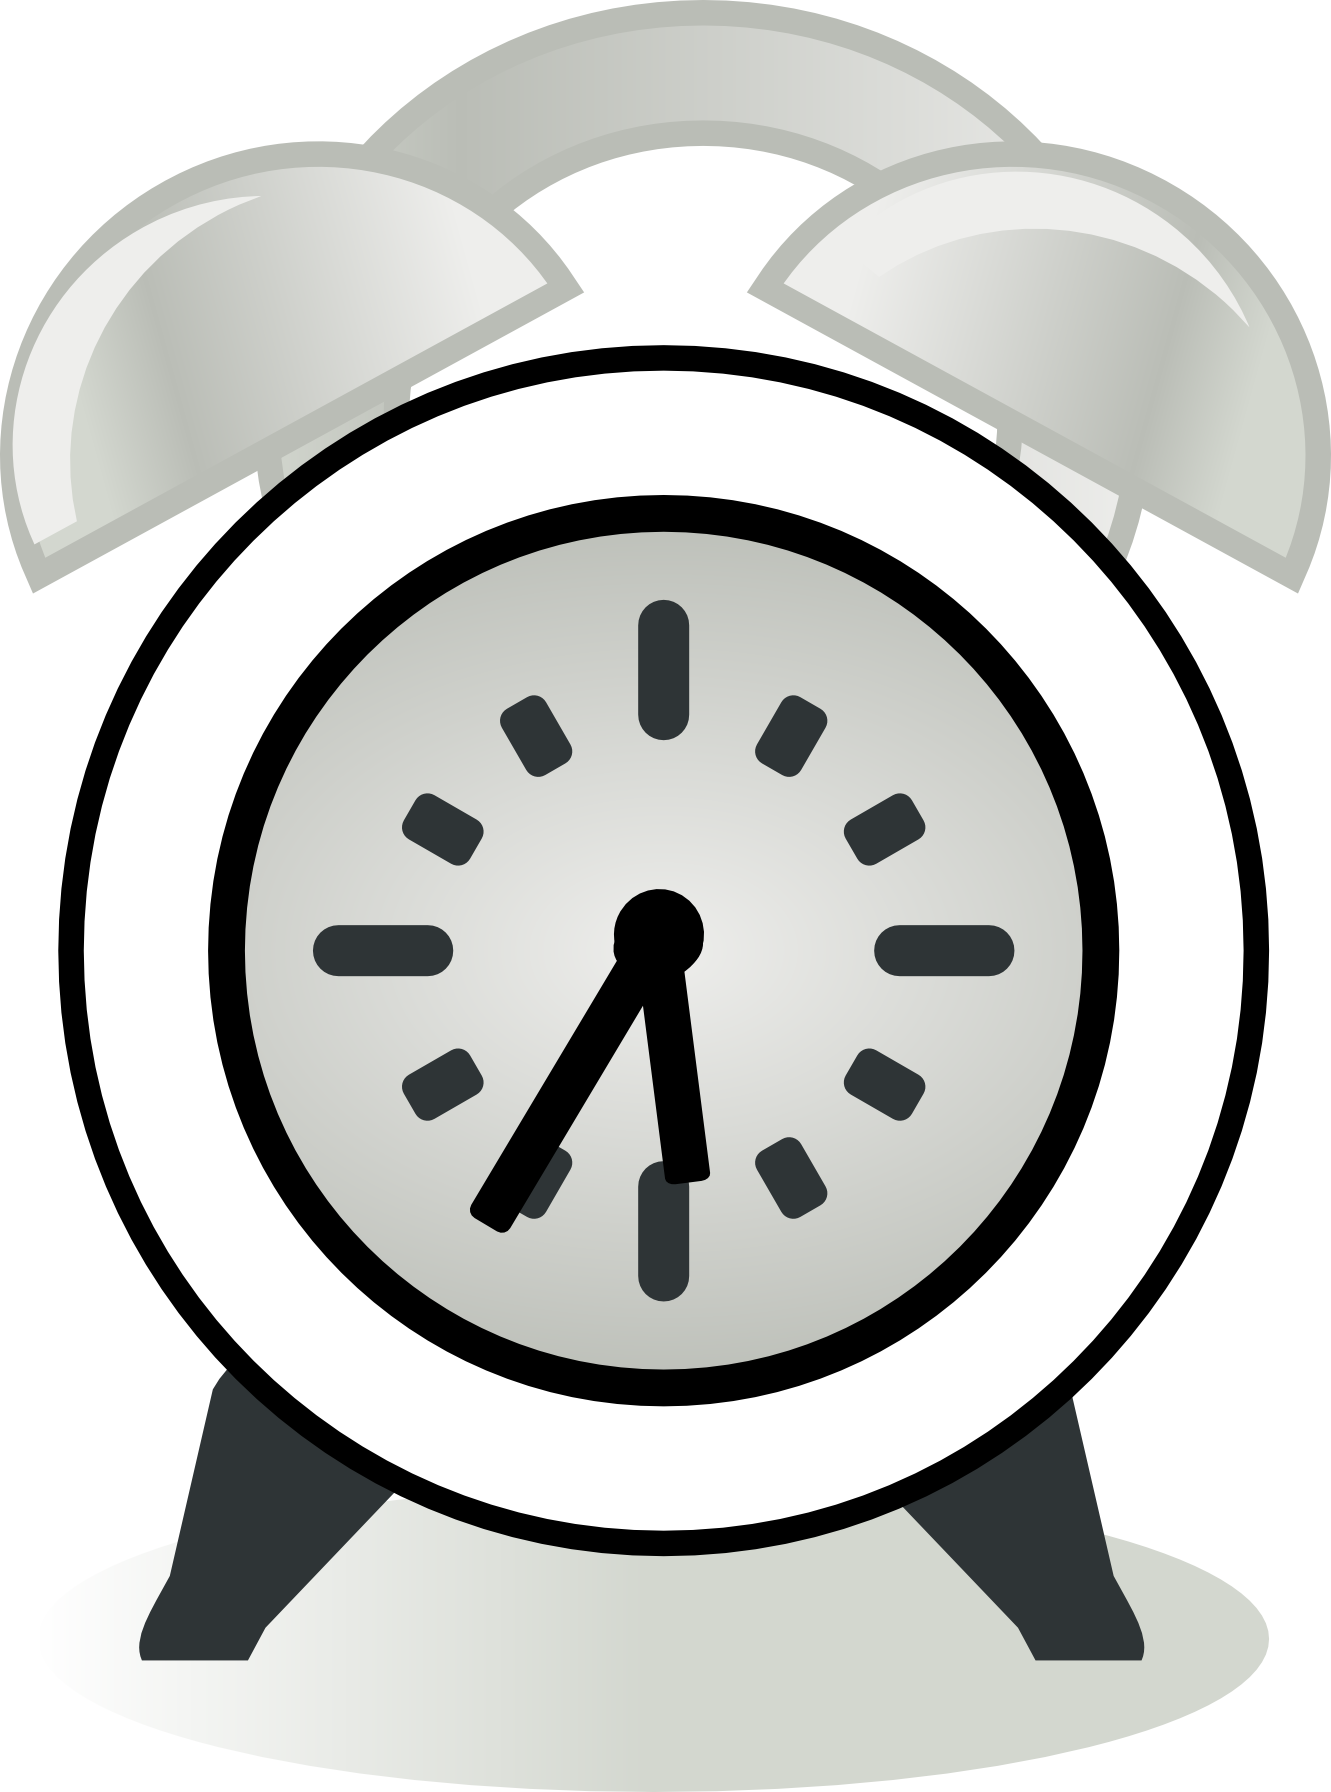 clock clipart black and white free - photo #41